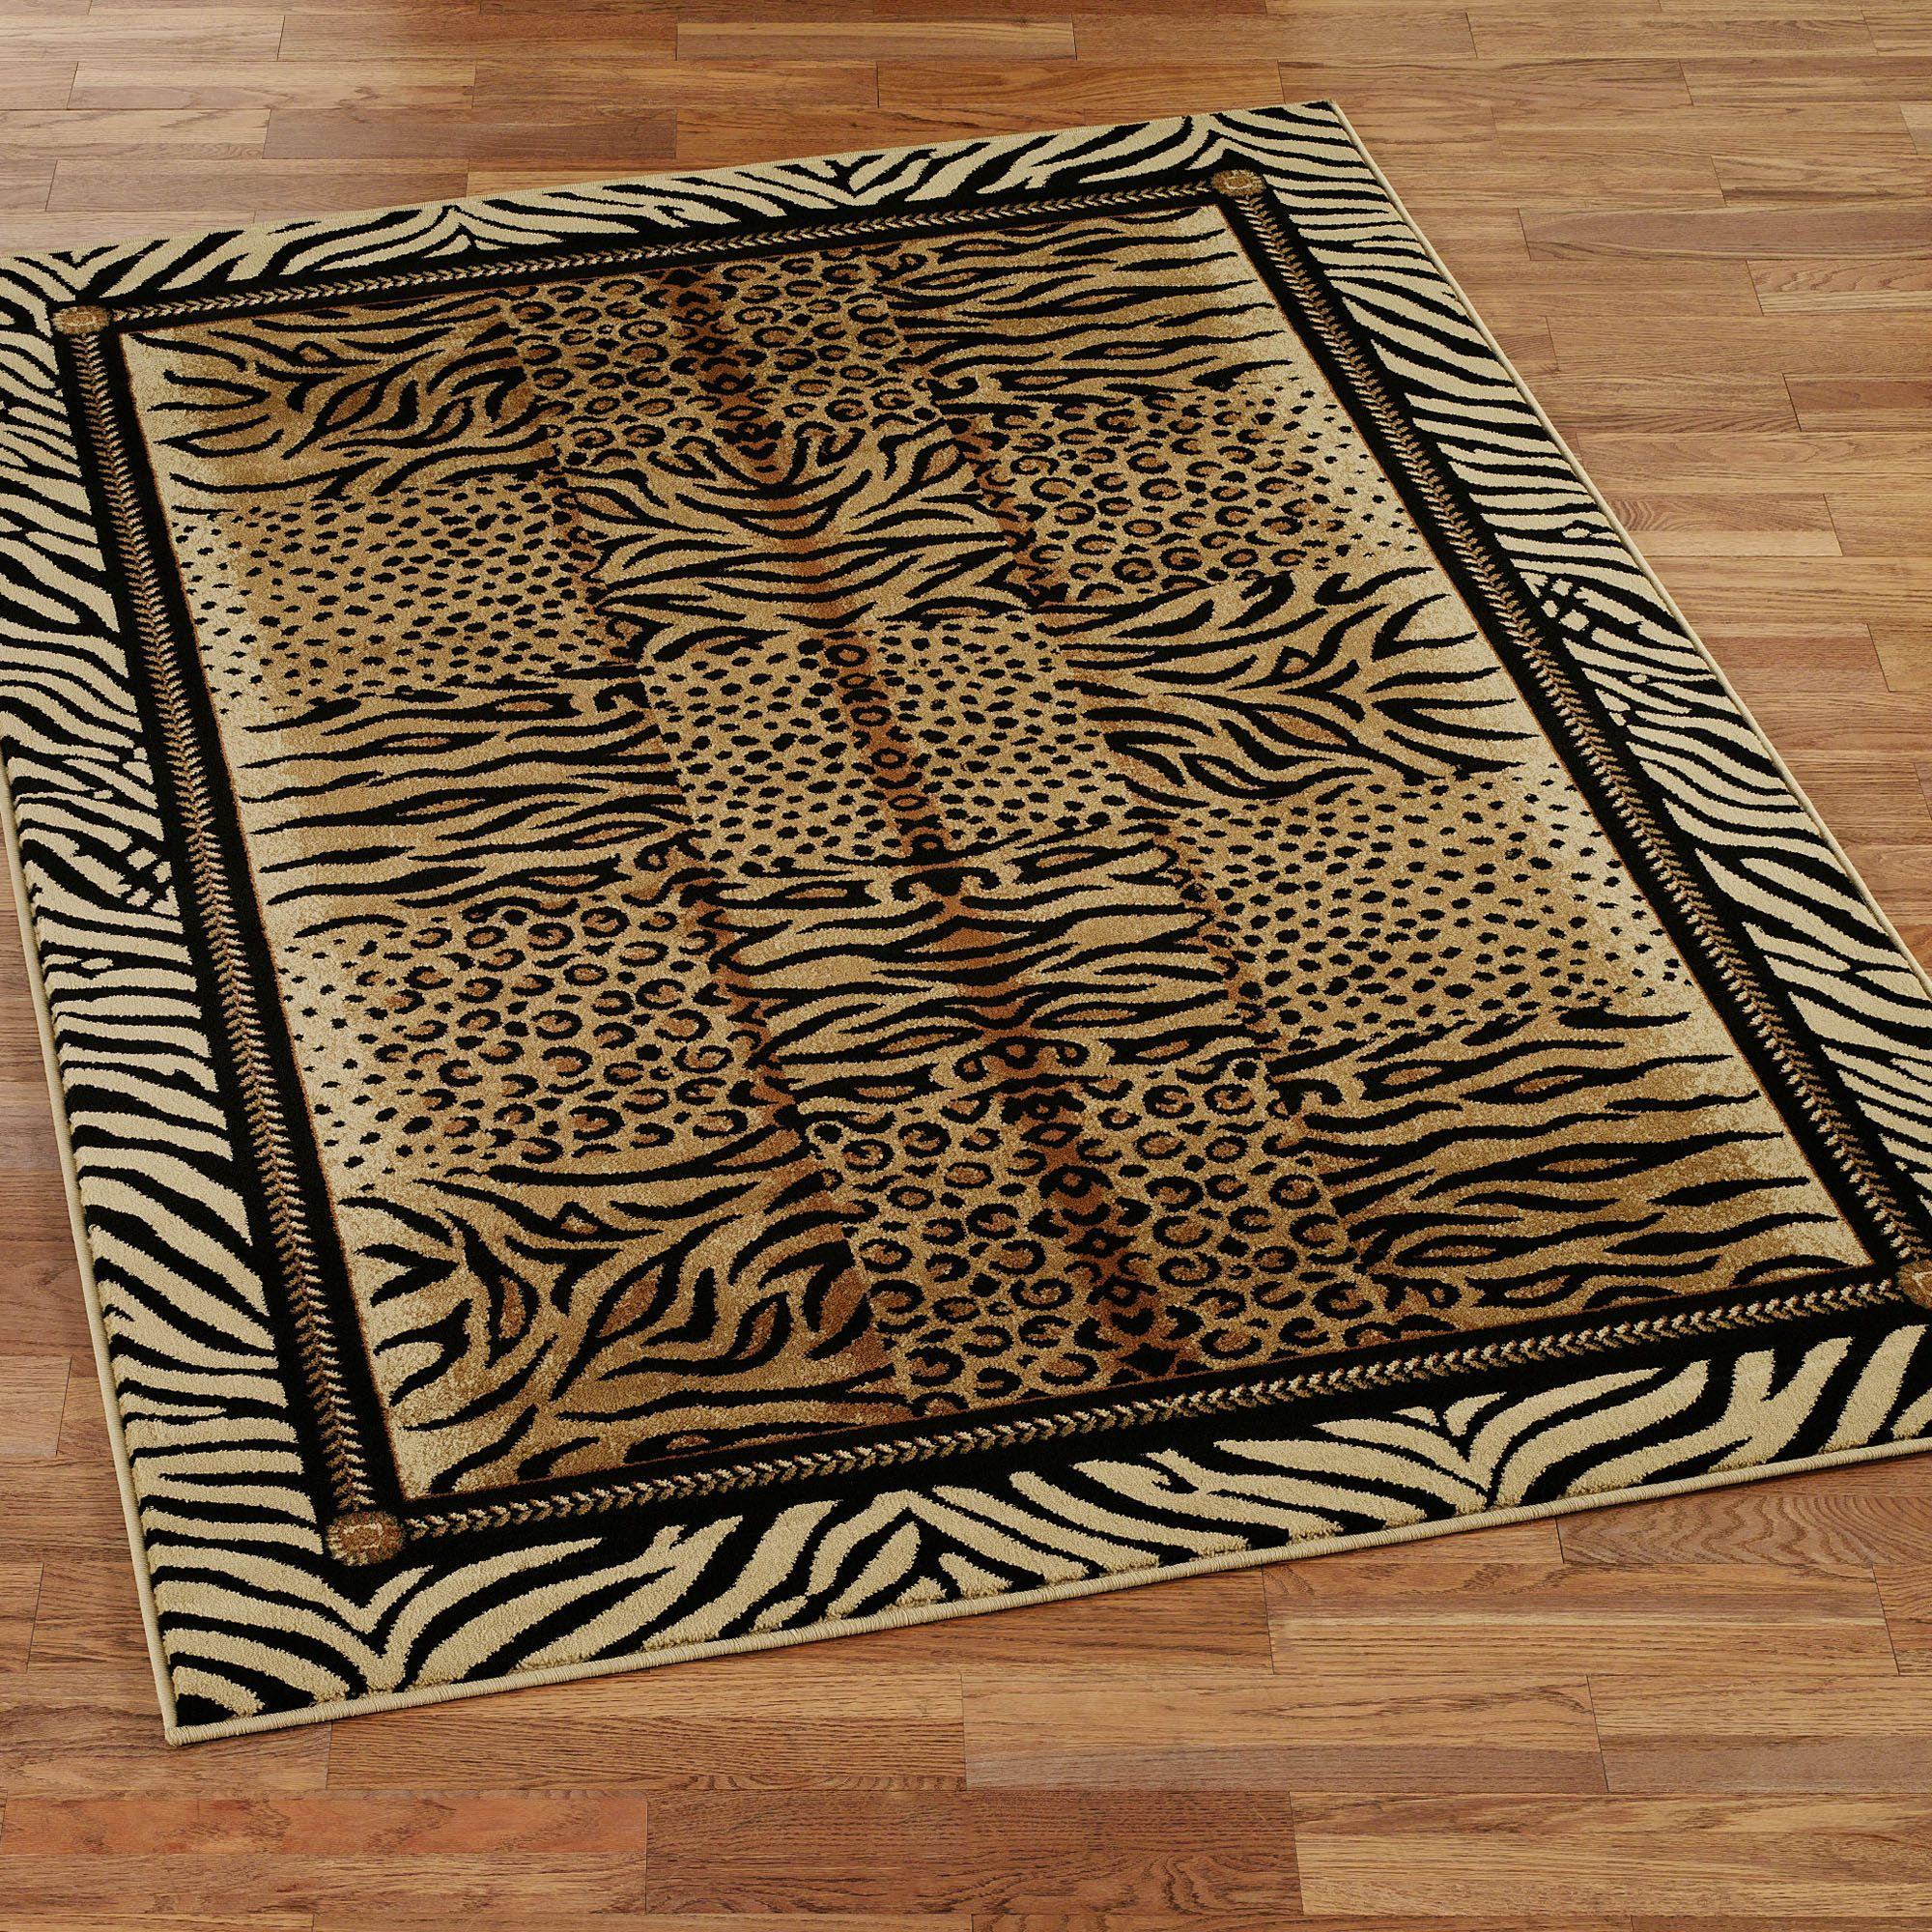 Very large bath rugs search - Safari Decor Google Search